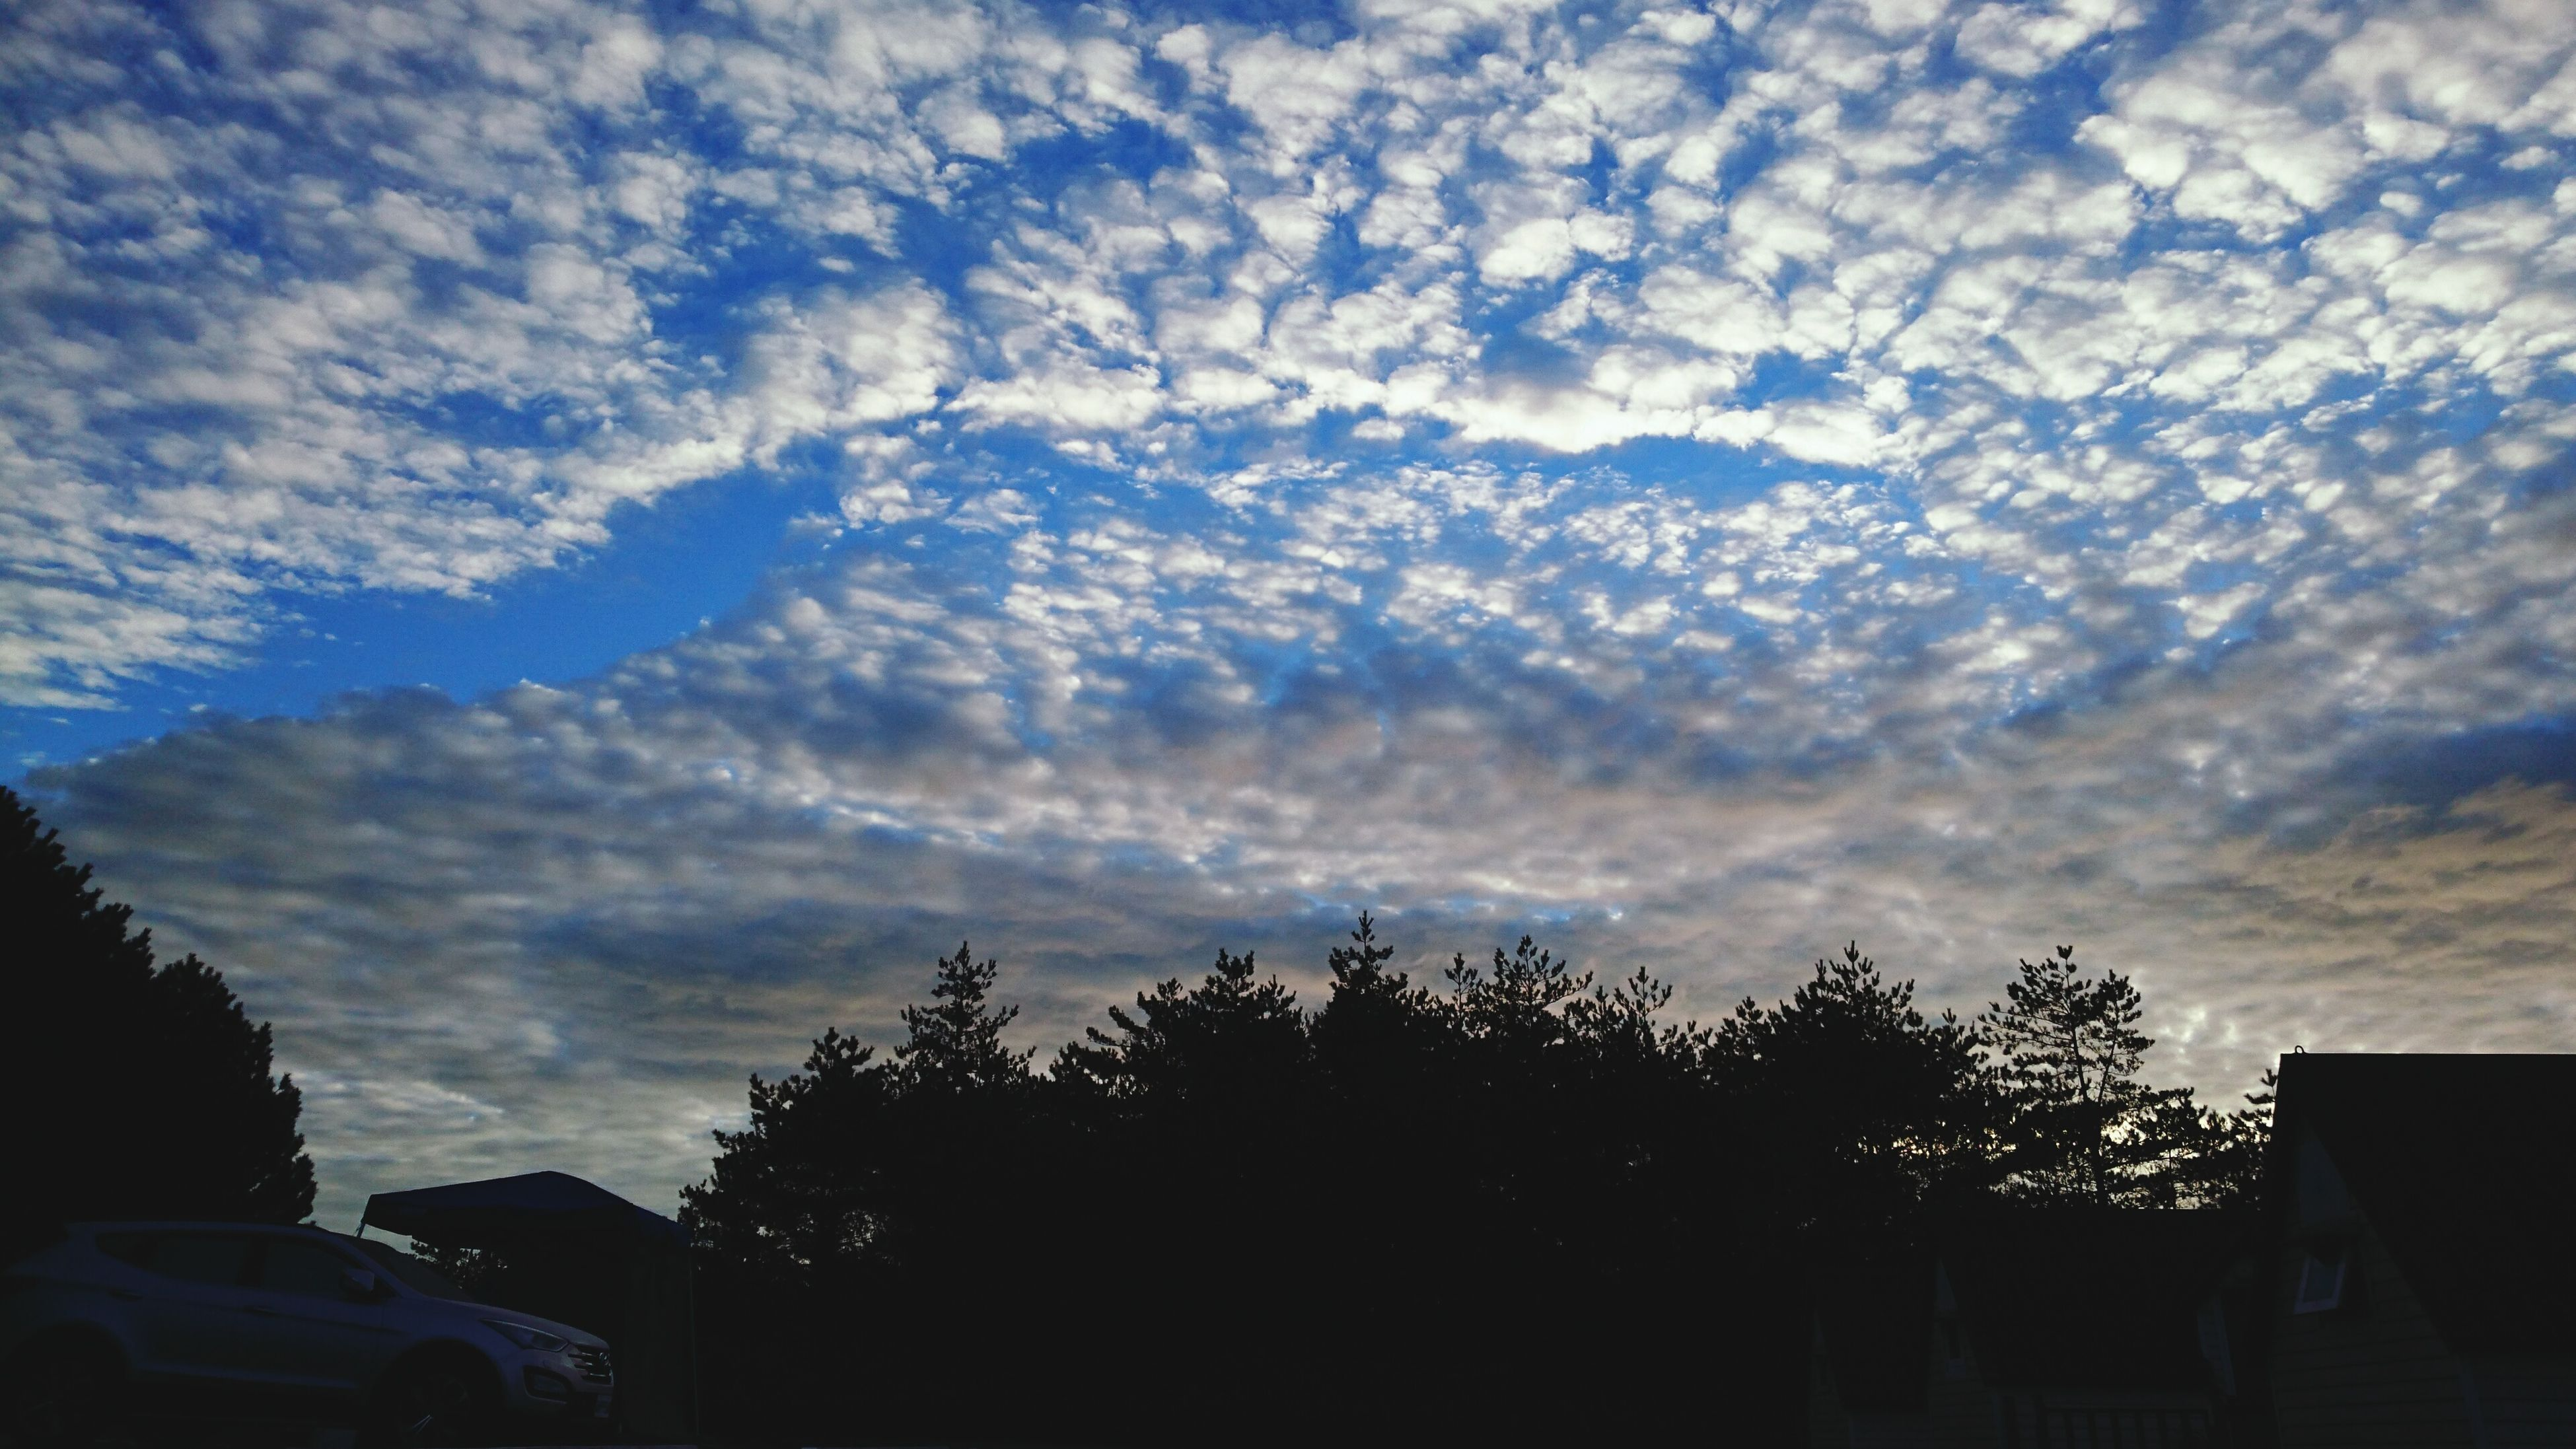 sky, tree, cloud - sky, silhouette, cloudy, low angle view, cloud, nature, house, sunset, beauty in nature, building exterior, scenics, built structure, tranquility, weather, tranquil scene, architecture, outdoors, dusk